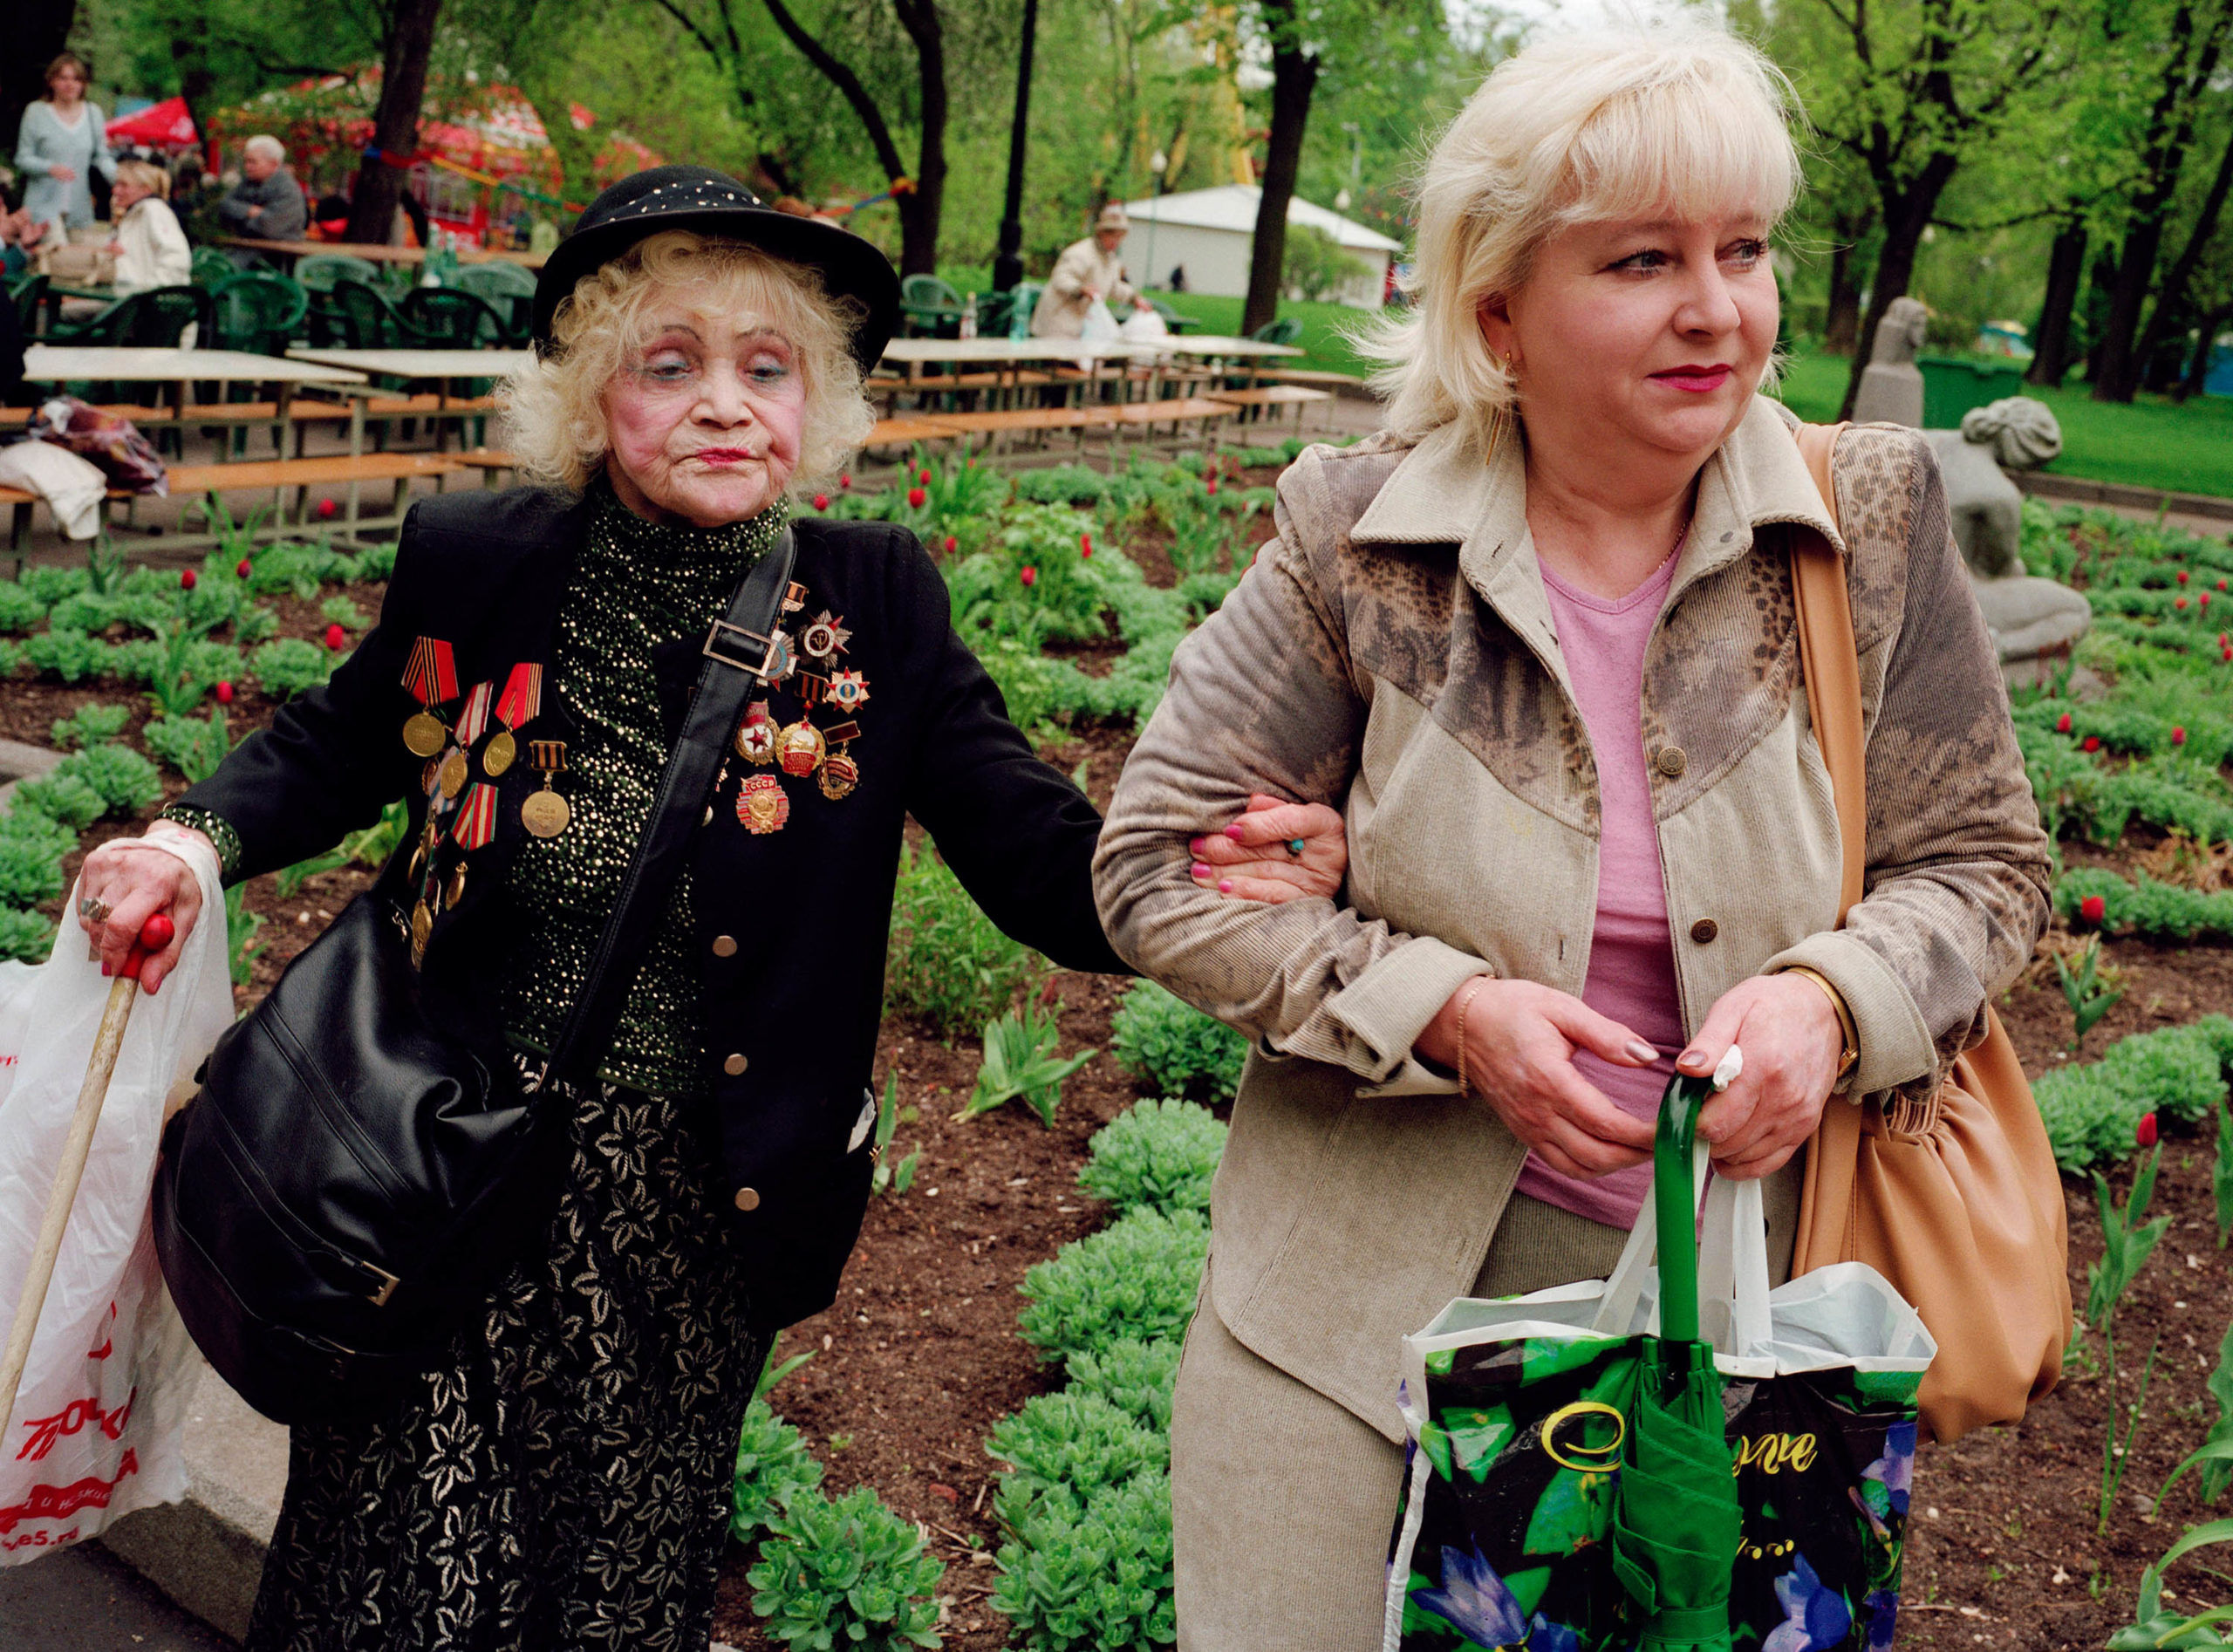 Russia, Moscow. Victory Day. After the celebrations, a tipsy veteran is picked up by her daughter.